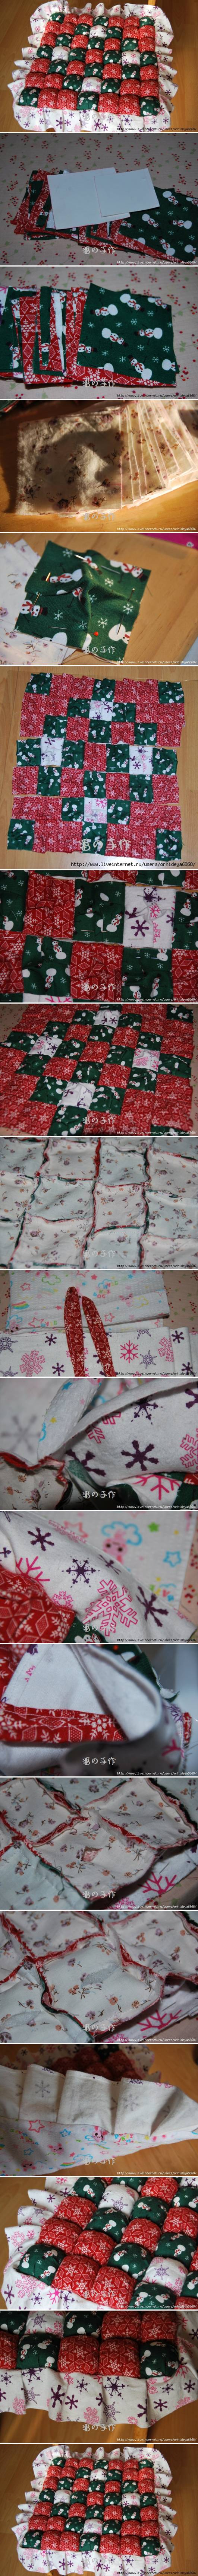 diy-patchwork-pillow Holiday Decoration Patchwork Ideas - Step by step